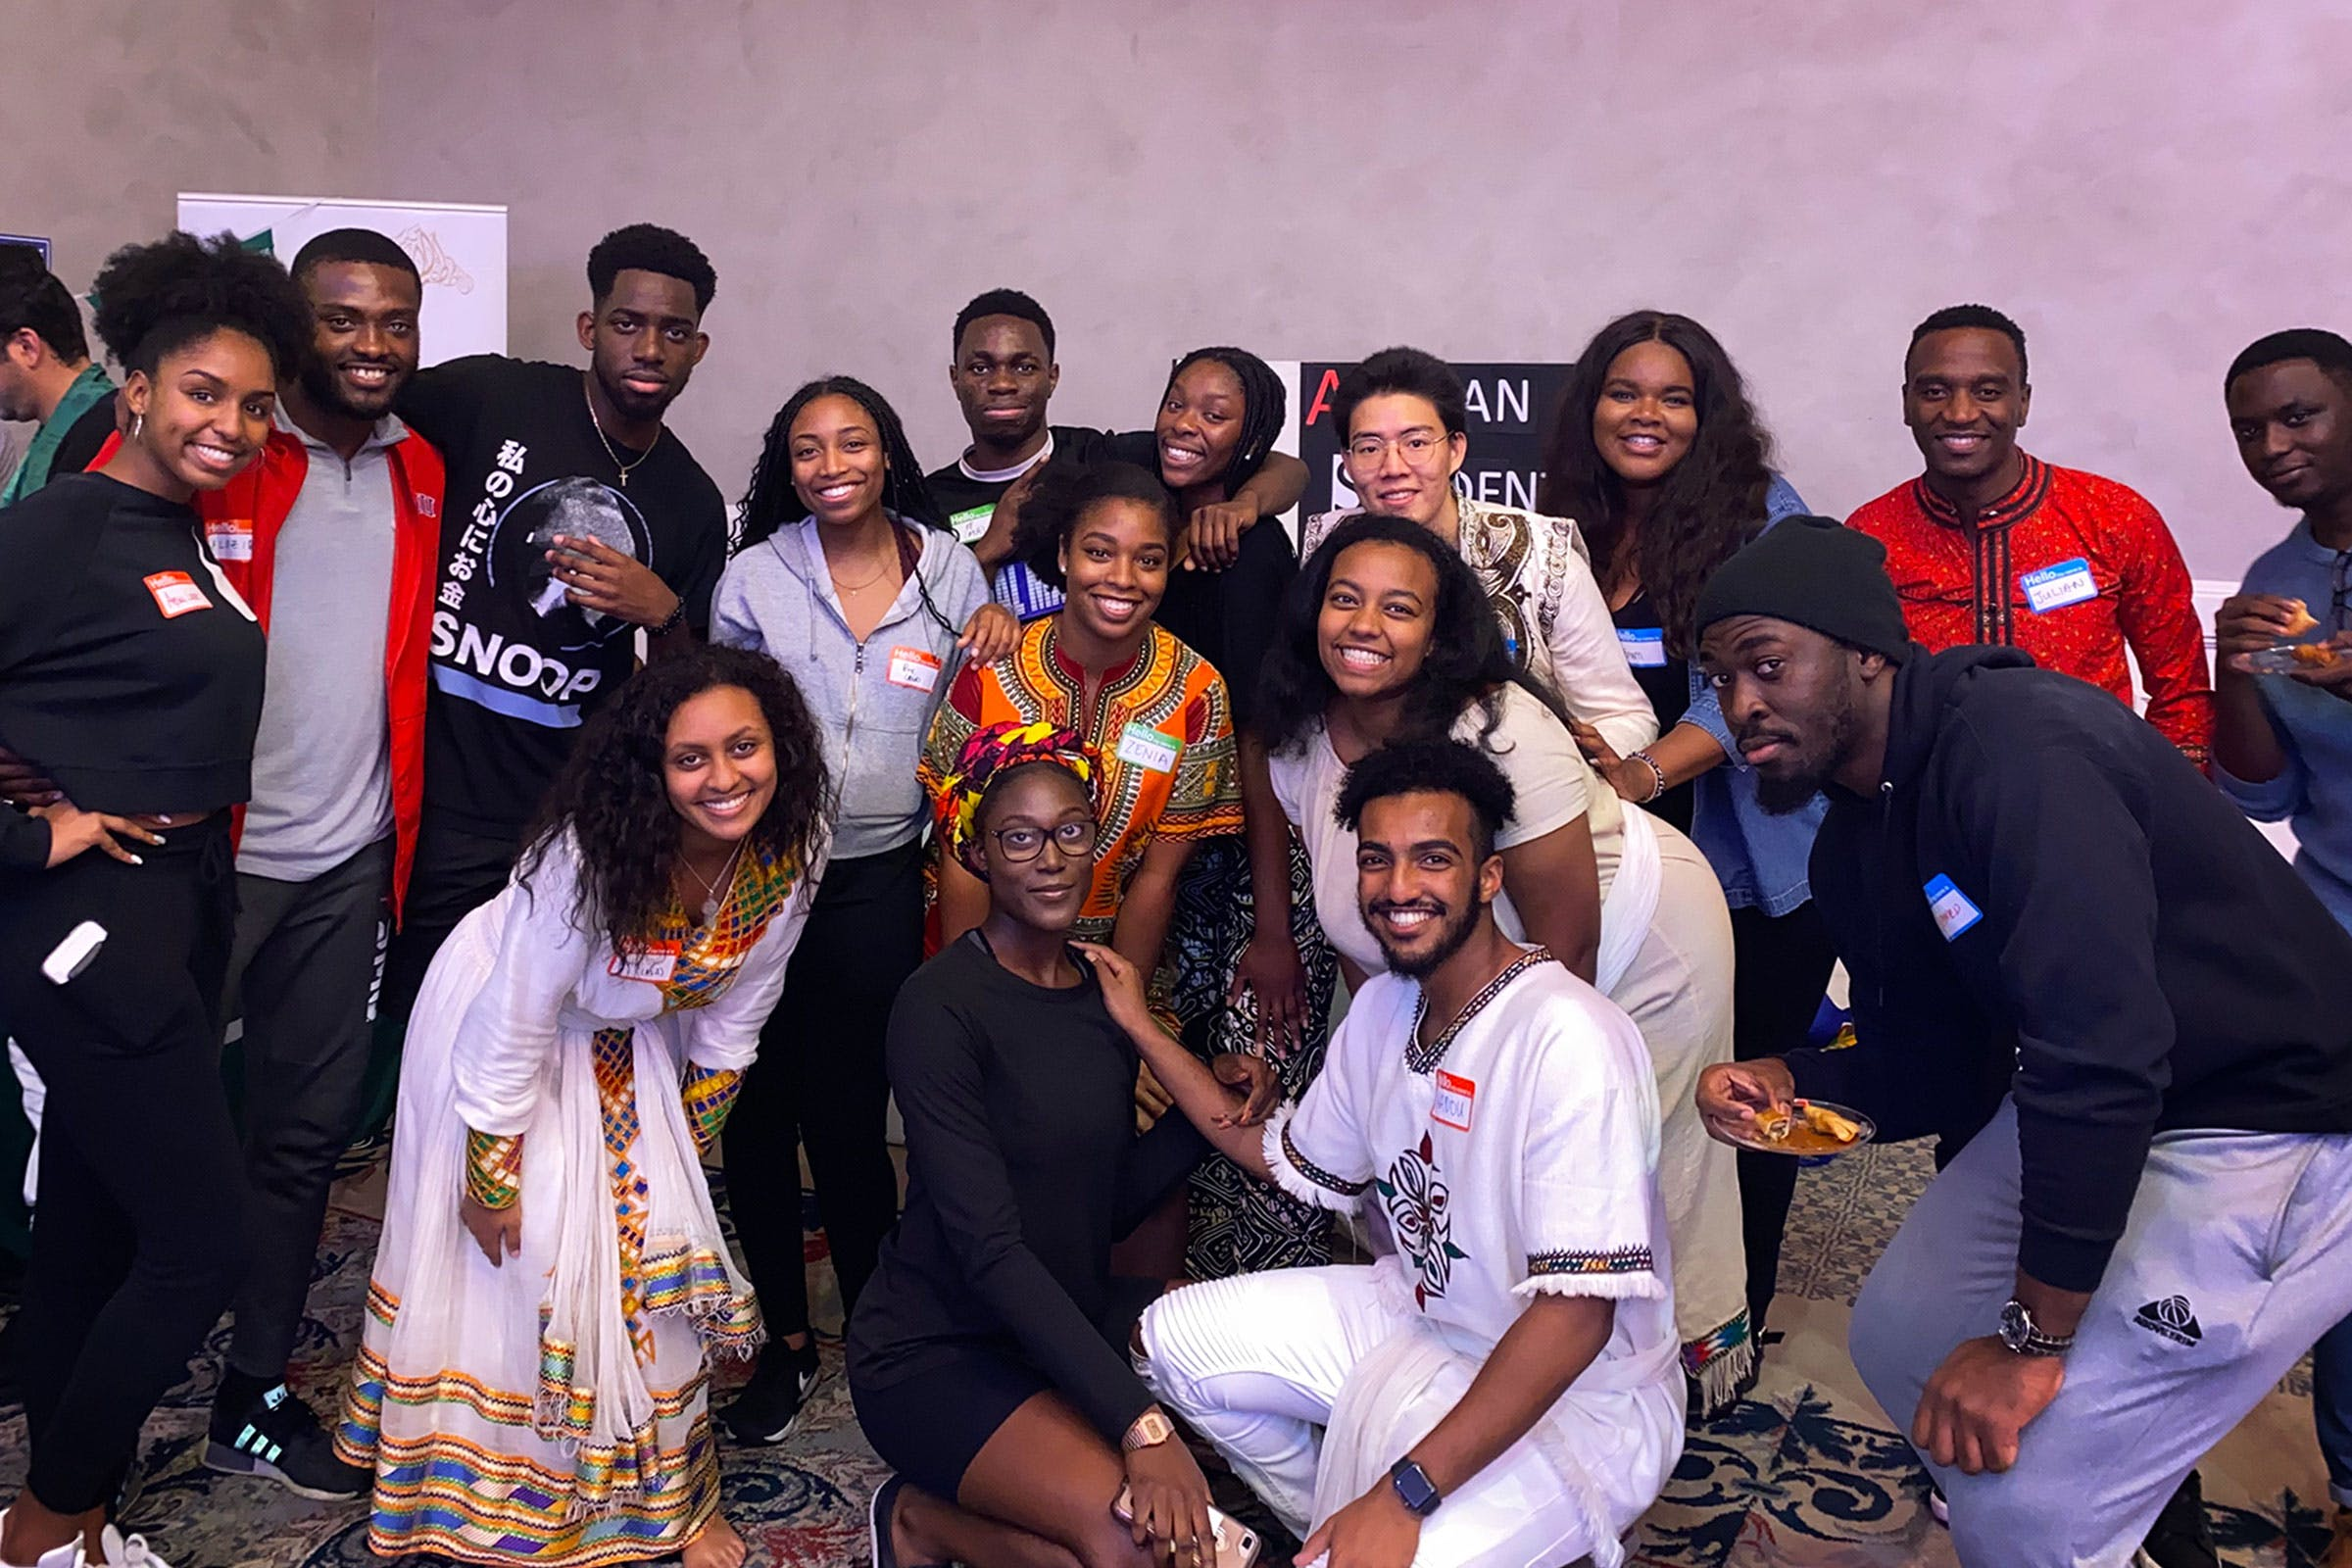 Abena Marfo, center, with the African Student Association.